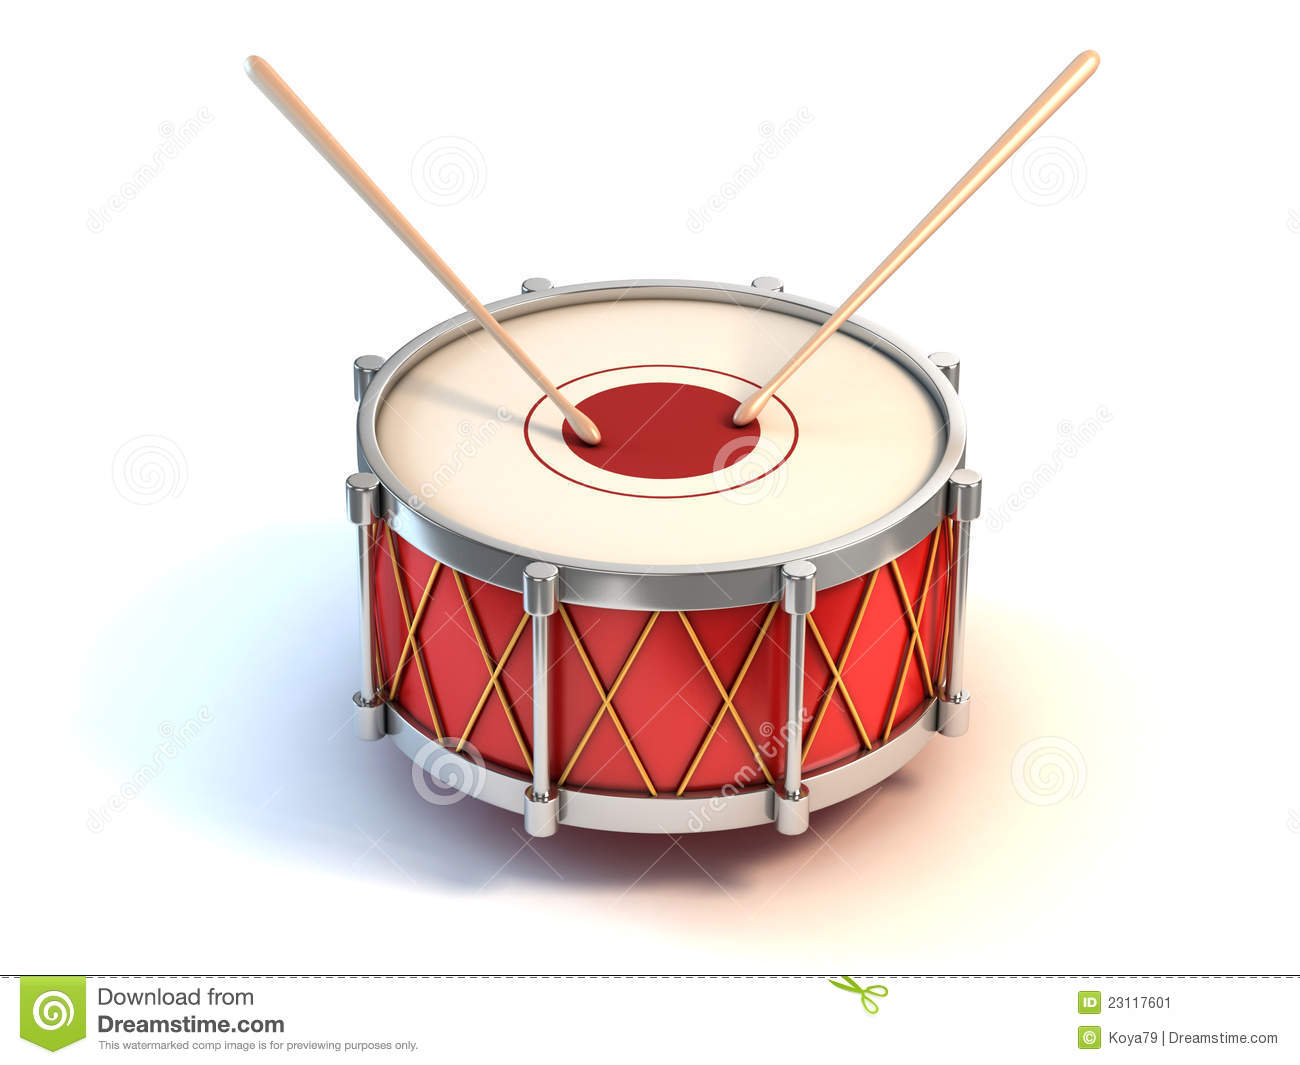 More similar stock images of ` Bass drum instrument 3d illustration `